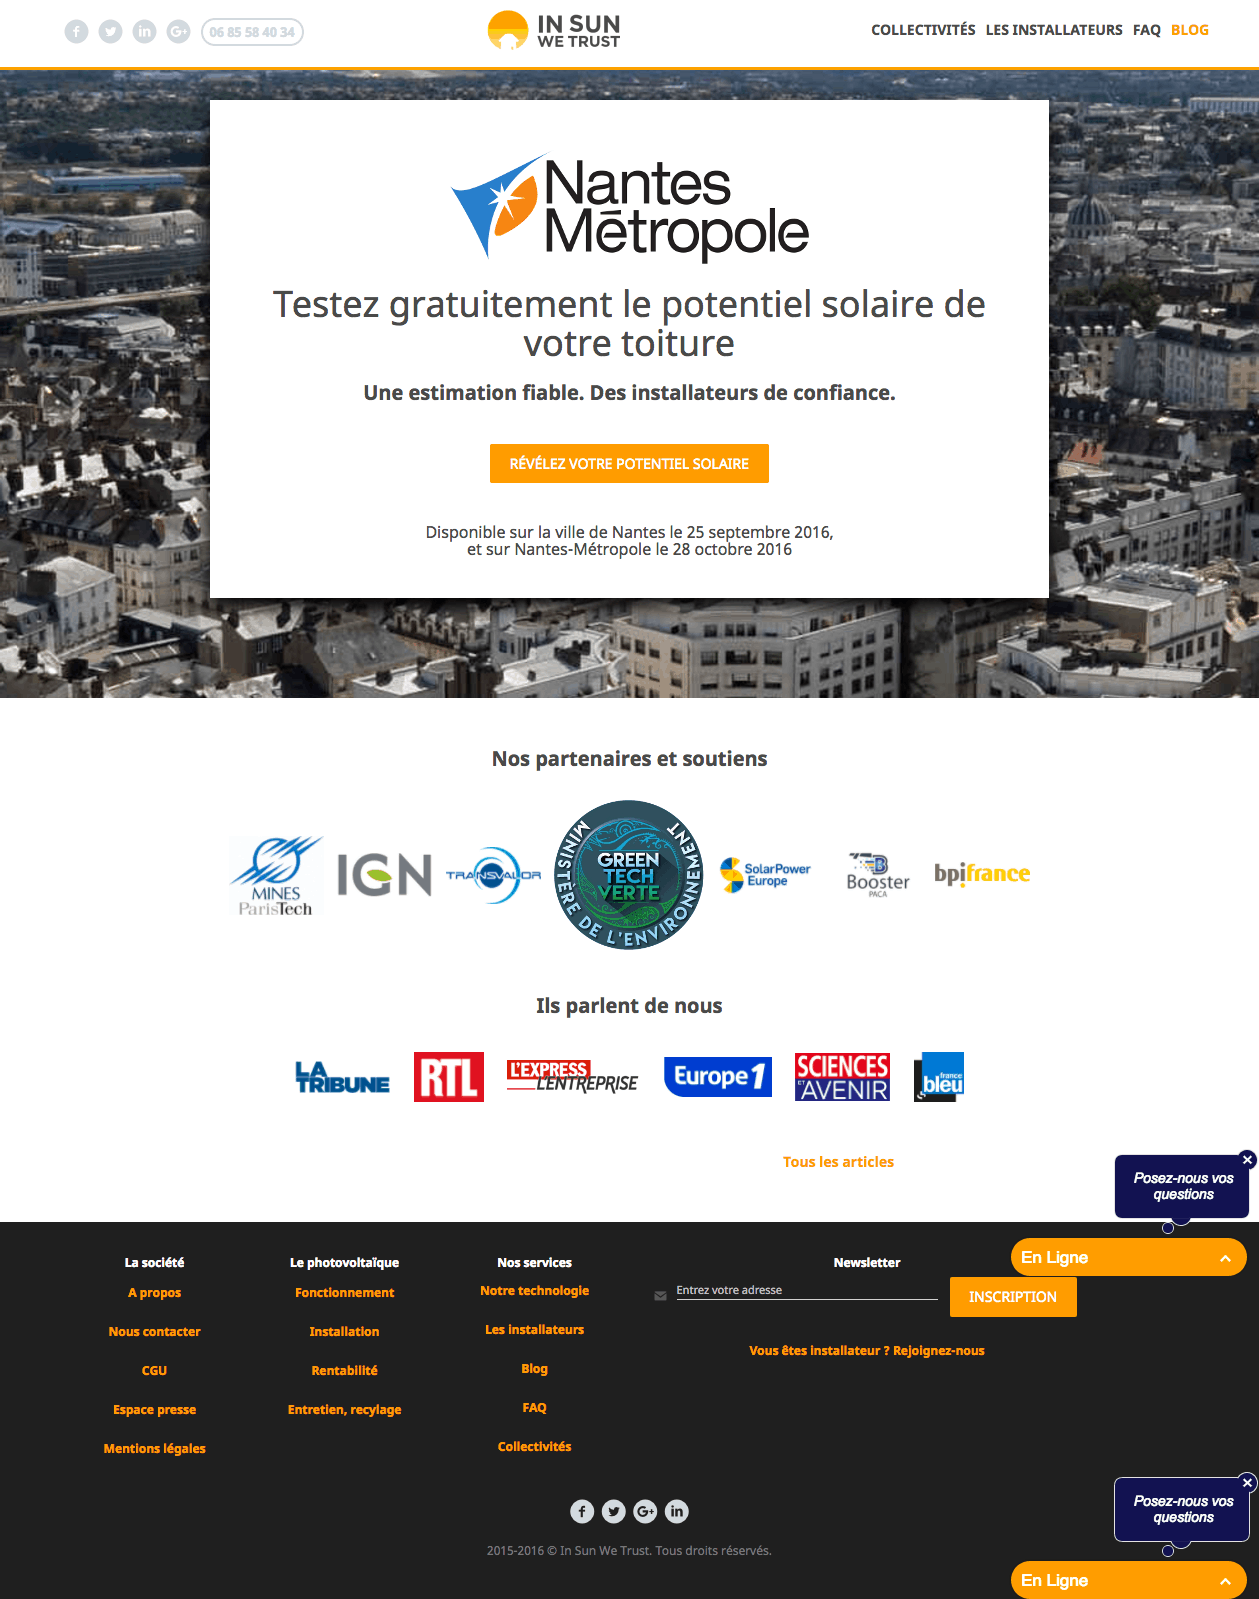 screencapture-nantes-metropole-insunwetrust-solar-1474534435946